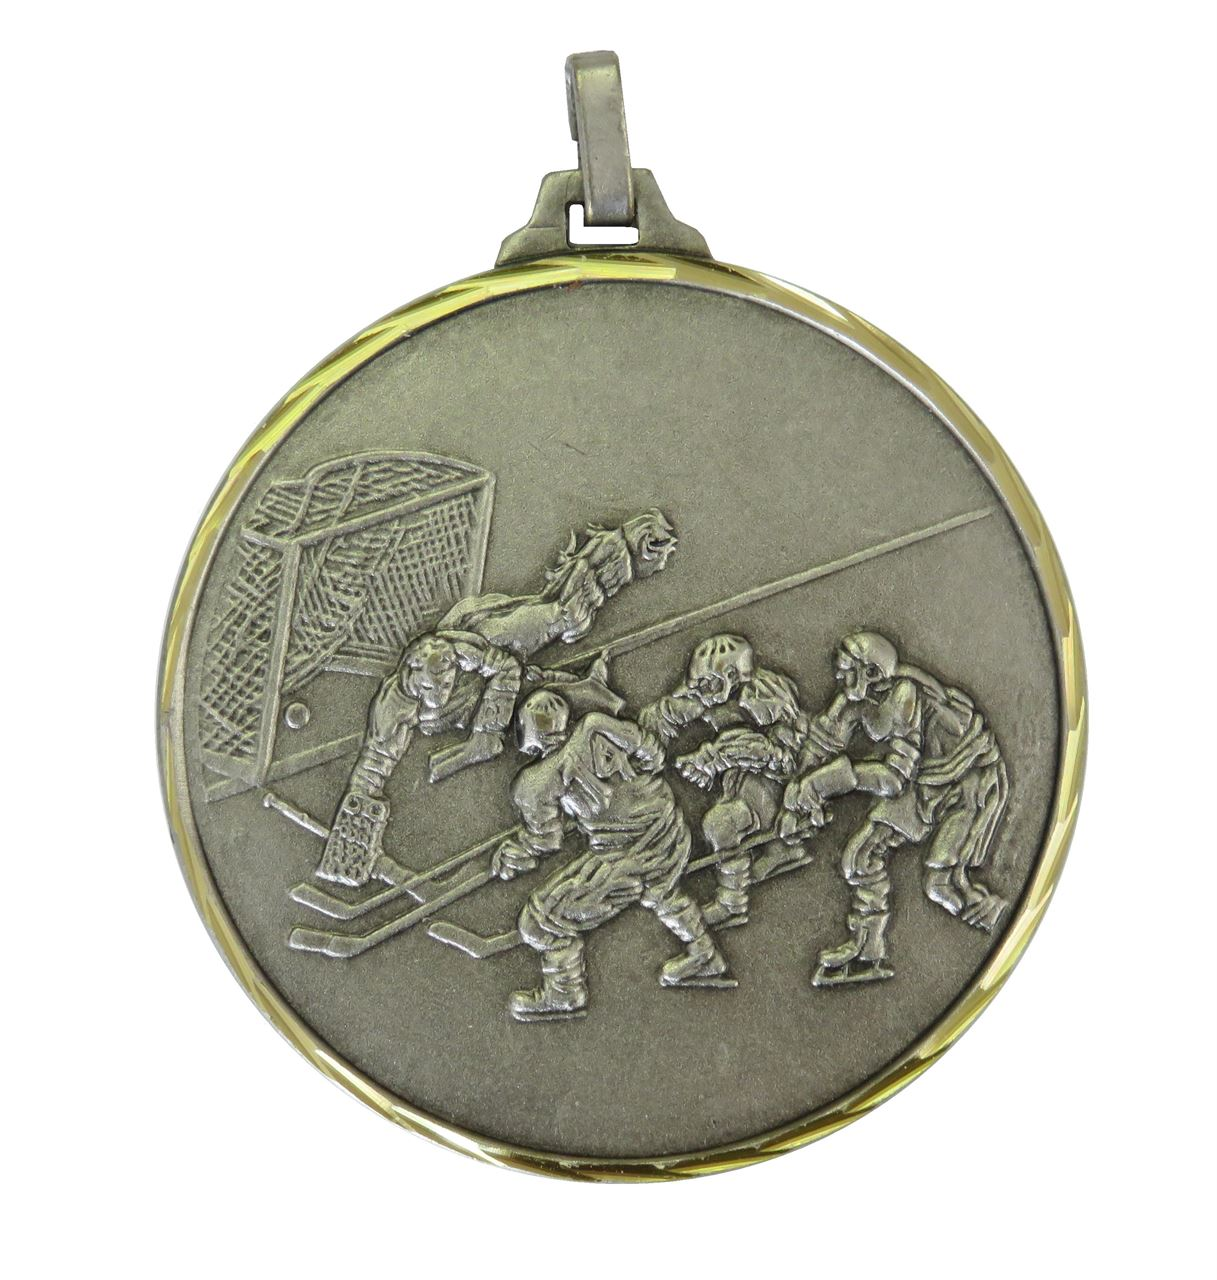 Silver Faceted Ice Hockey Medal (size: 52mm) - 225/52S